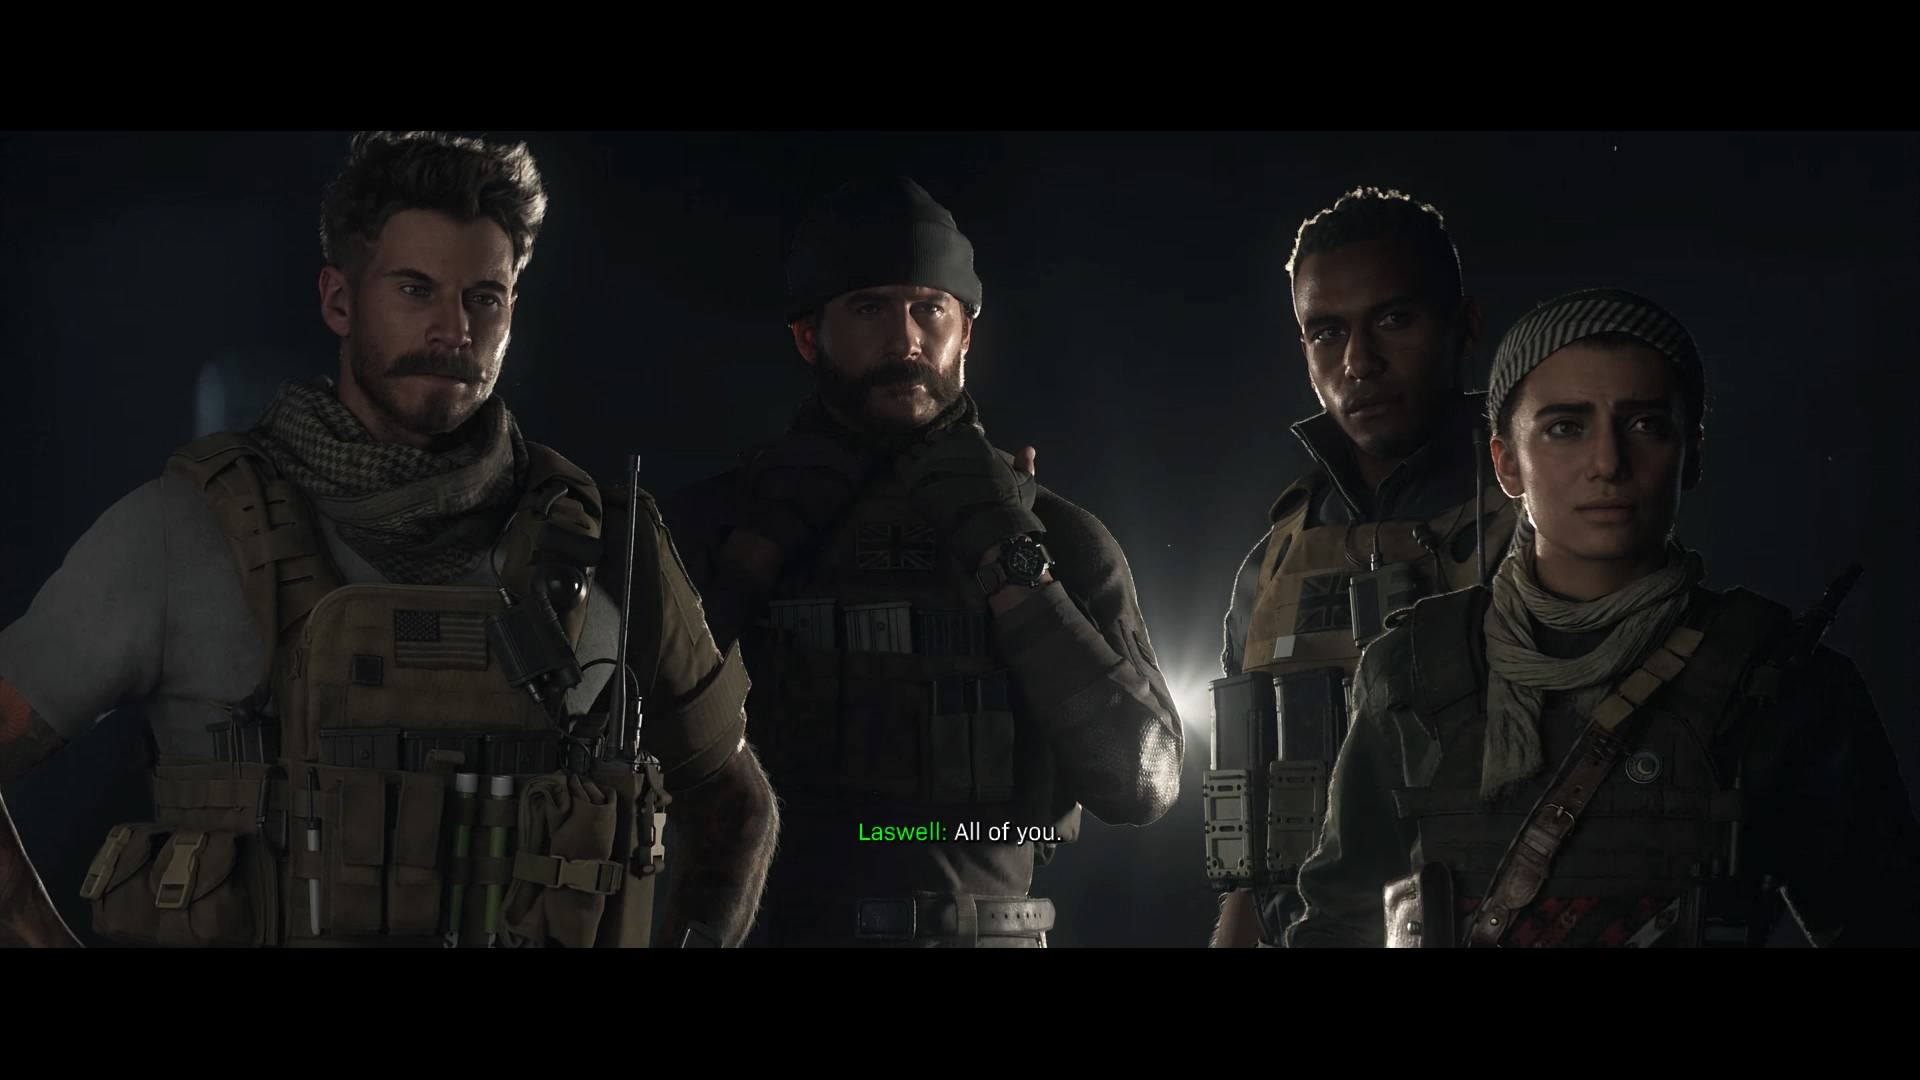 نقد بازی Call of Duty Modern Warfare